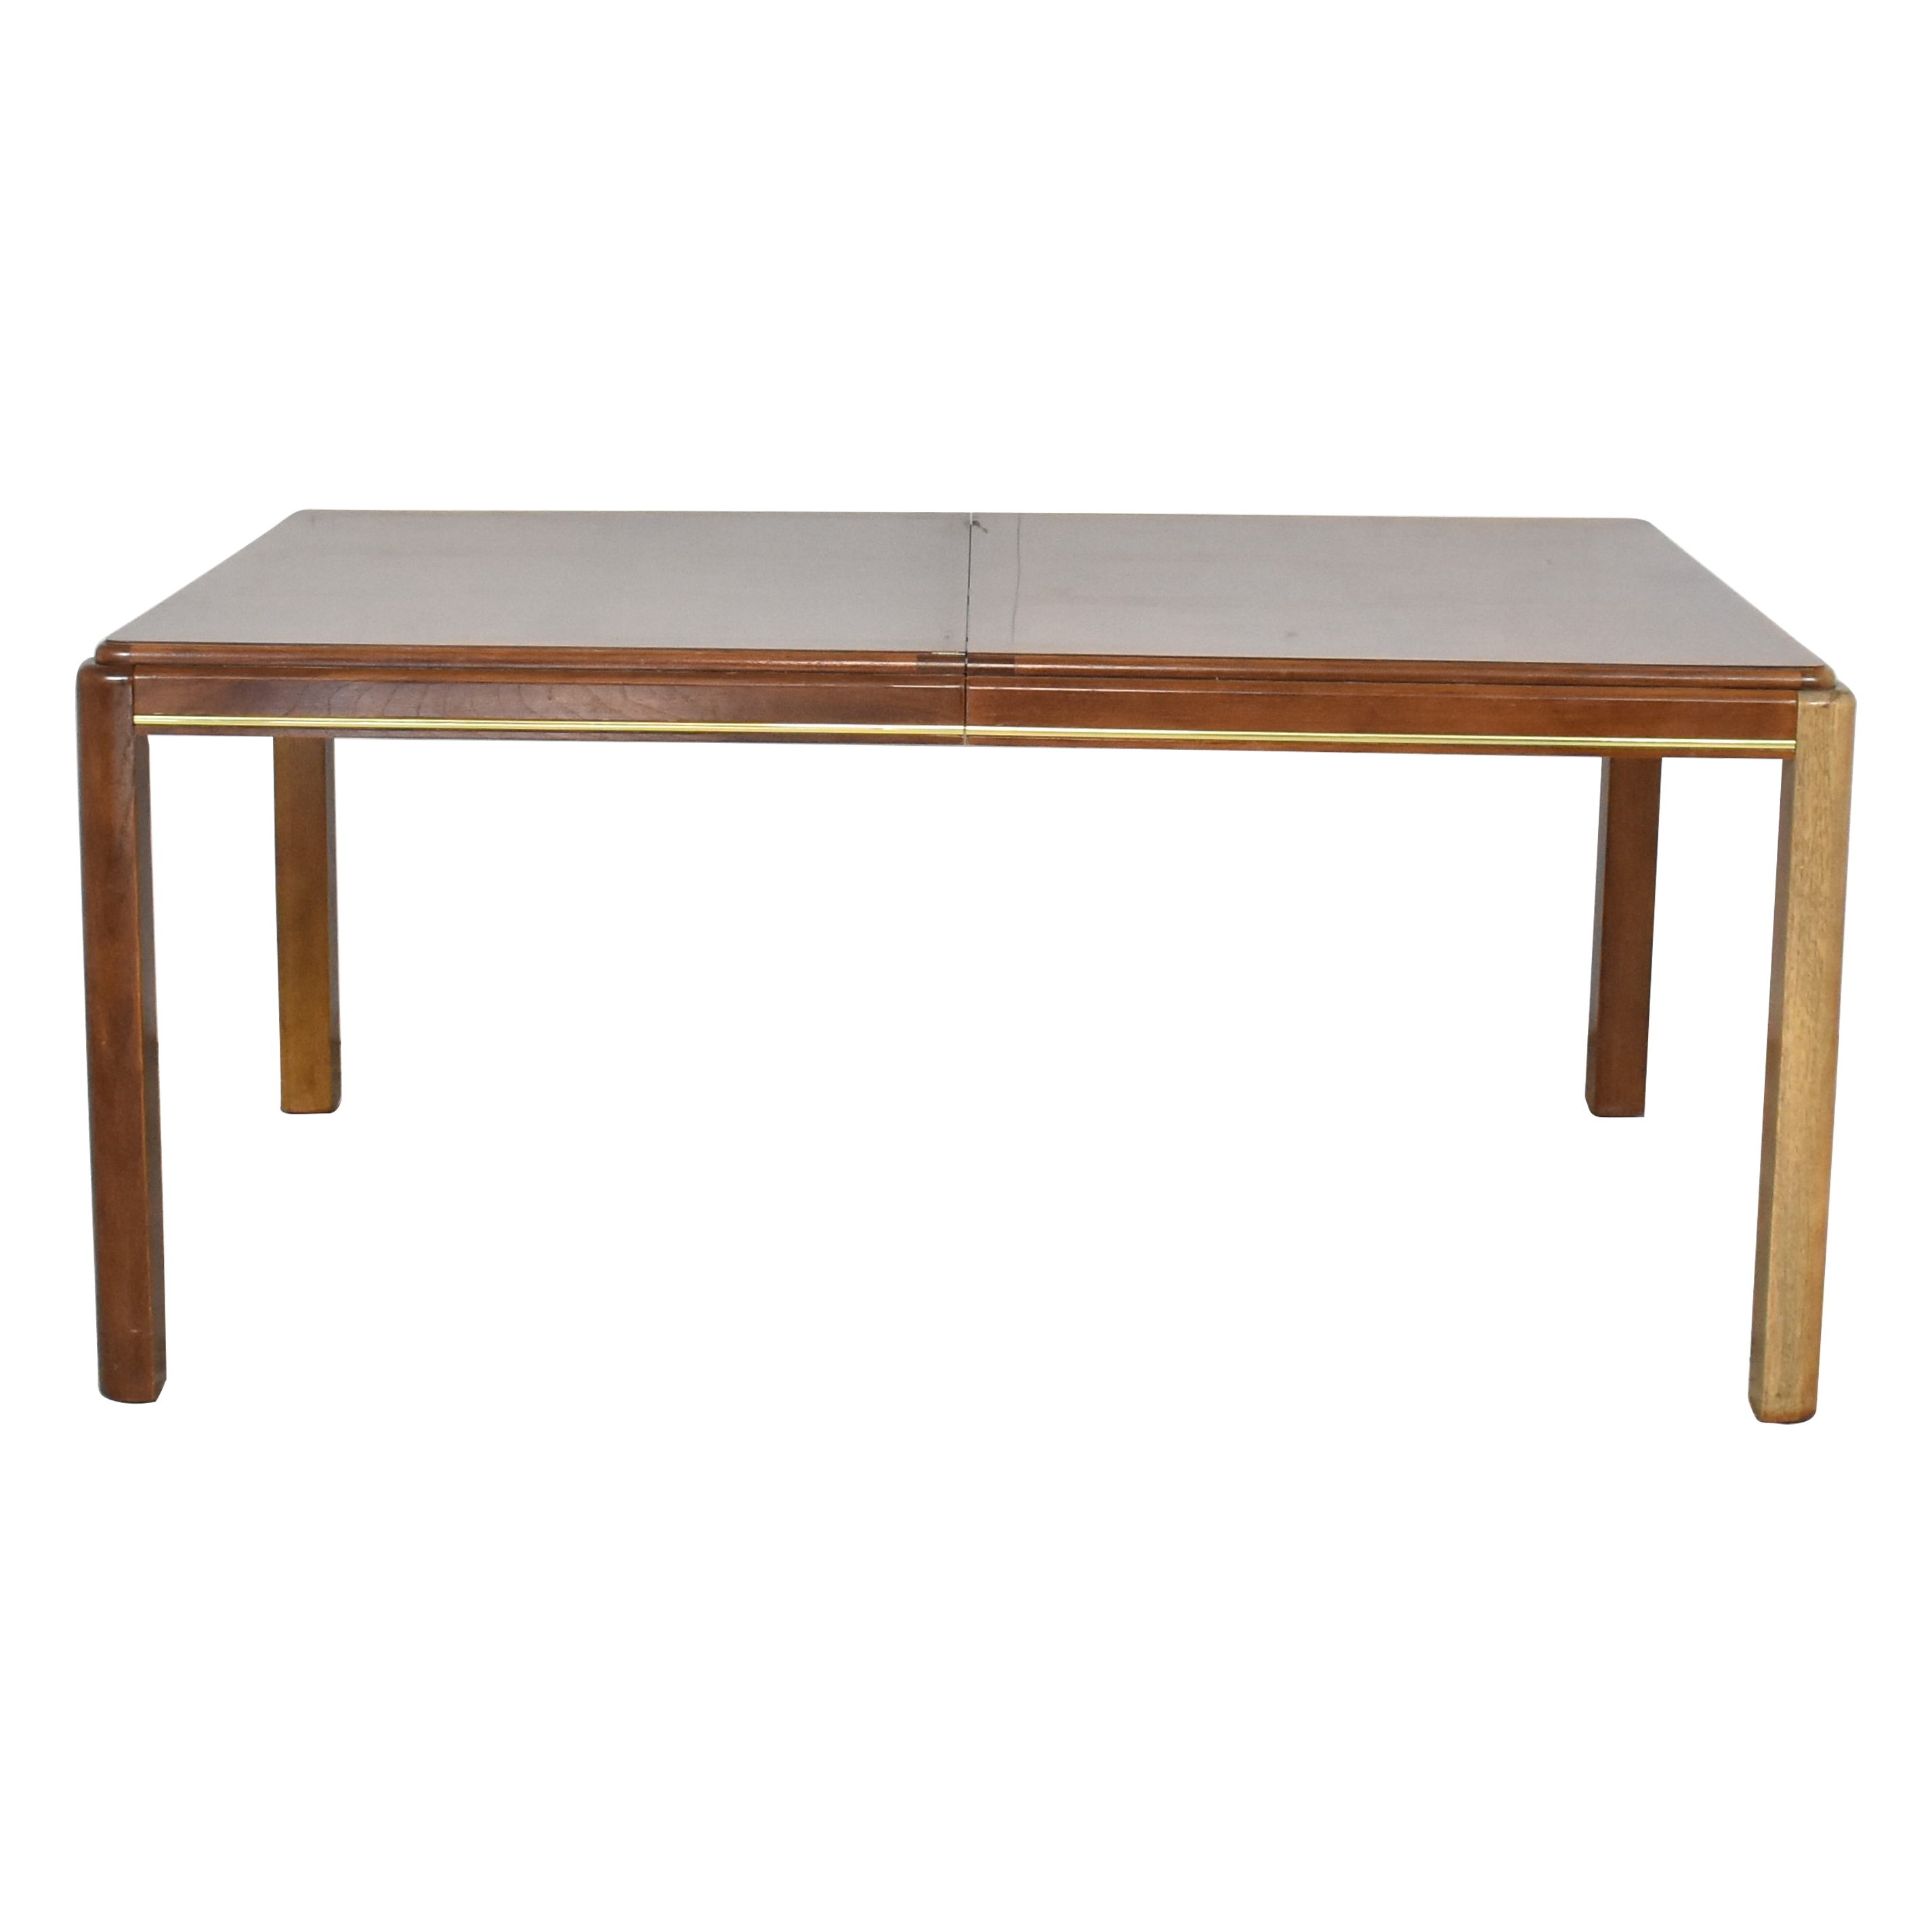 Thomasville Danish Style Dining Table / Dinner Tables